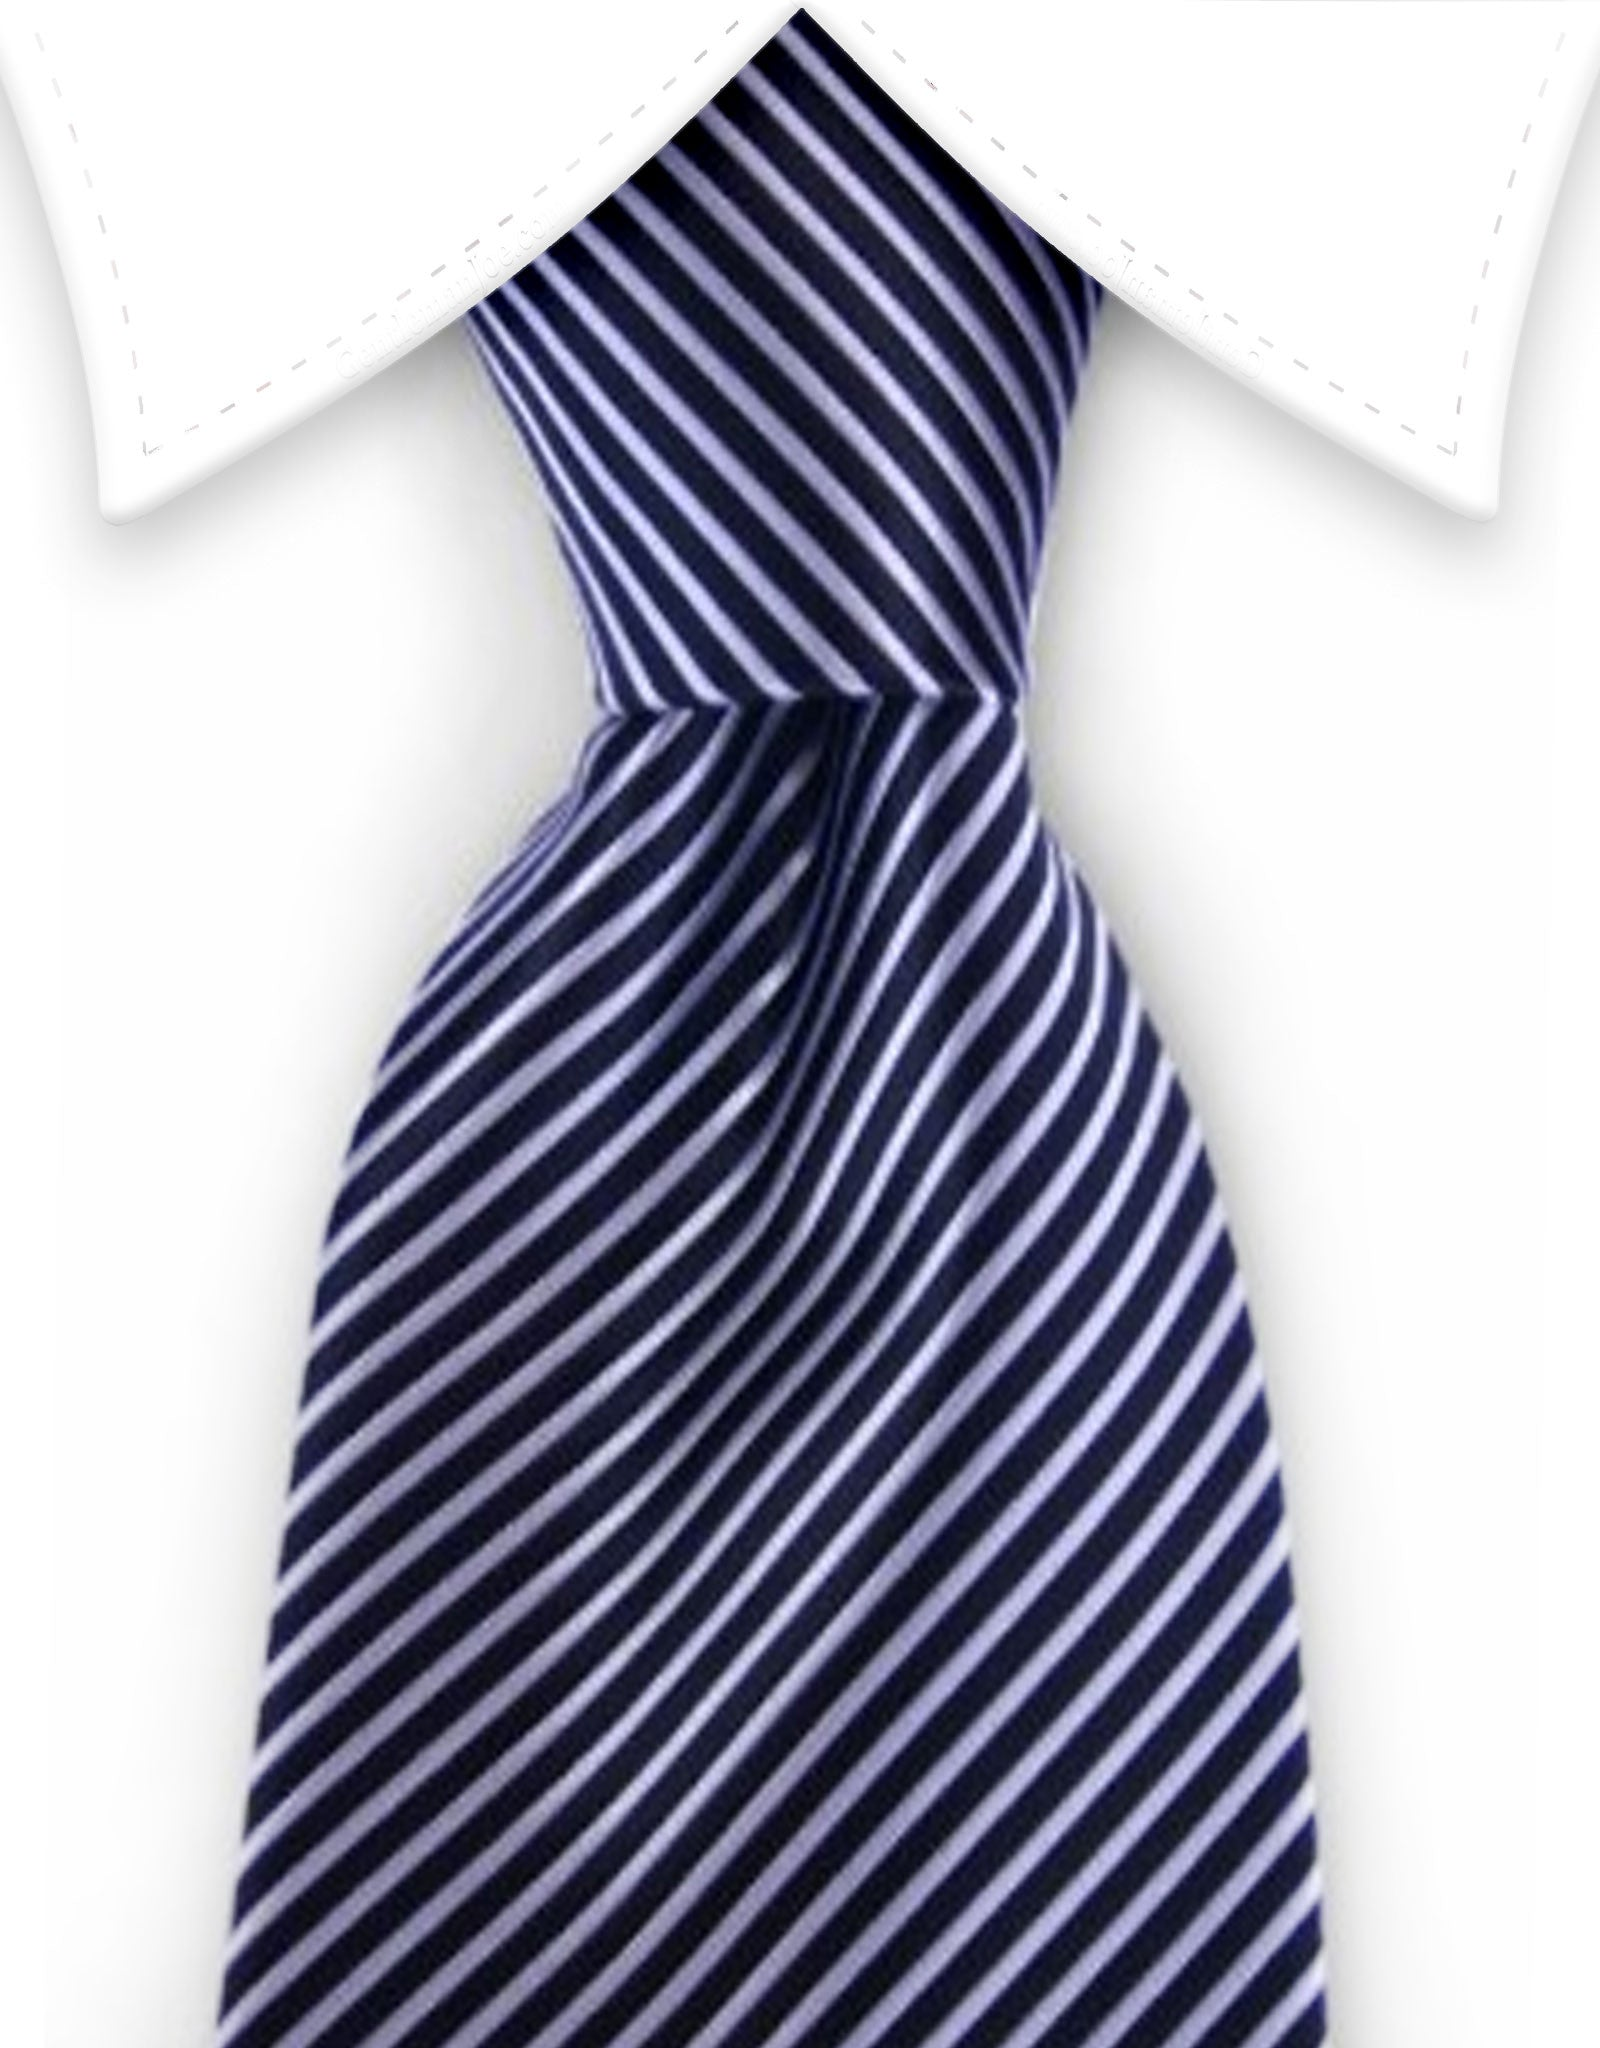 Black and silver pinstriped tie